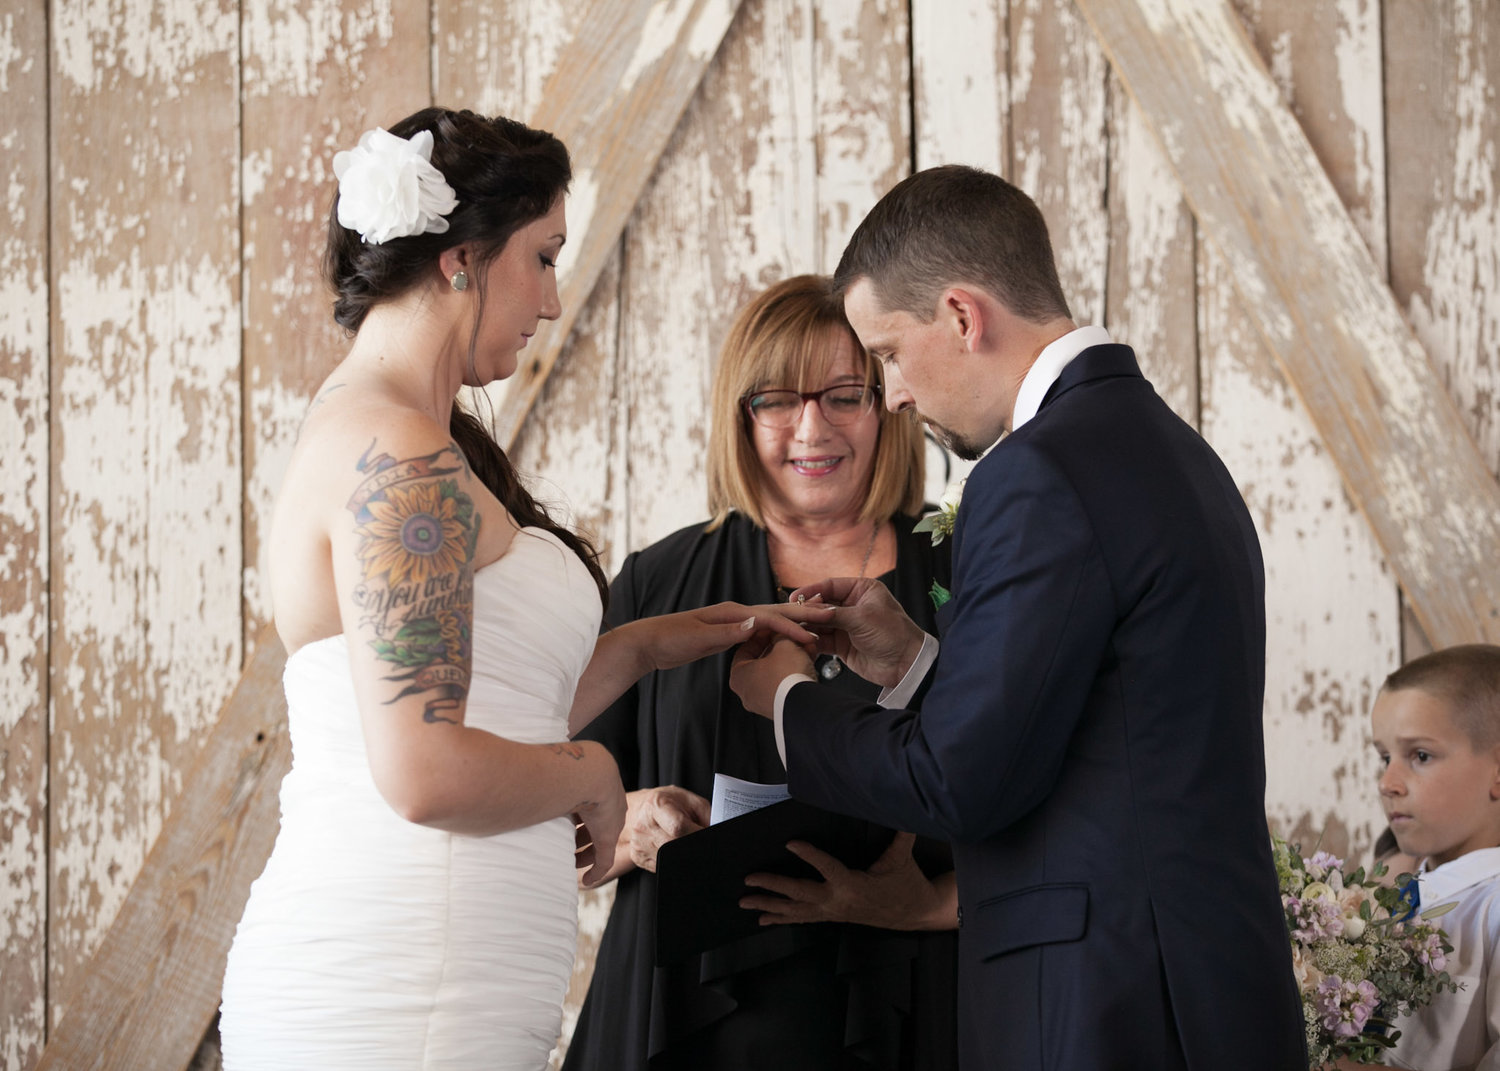 Kansas_City_Small_Wedding_Venue_Elope_Intimate_Ceremony_Budget_Affordable_157A&P.jpg